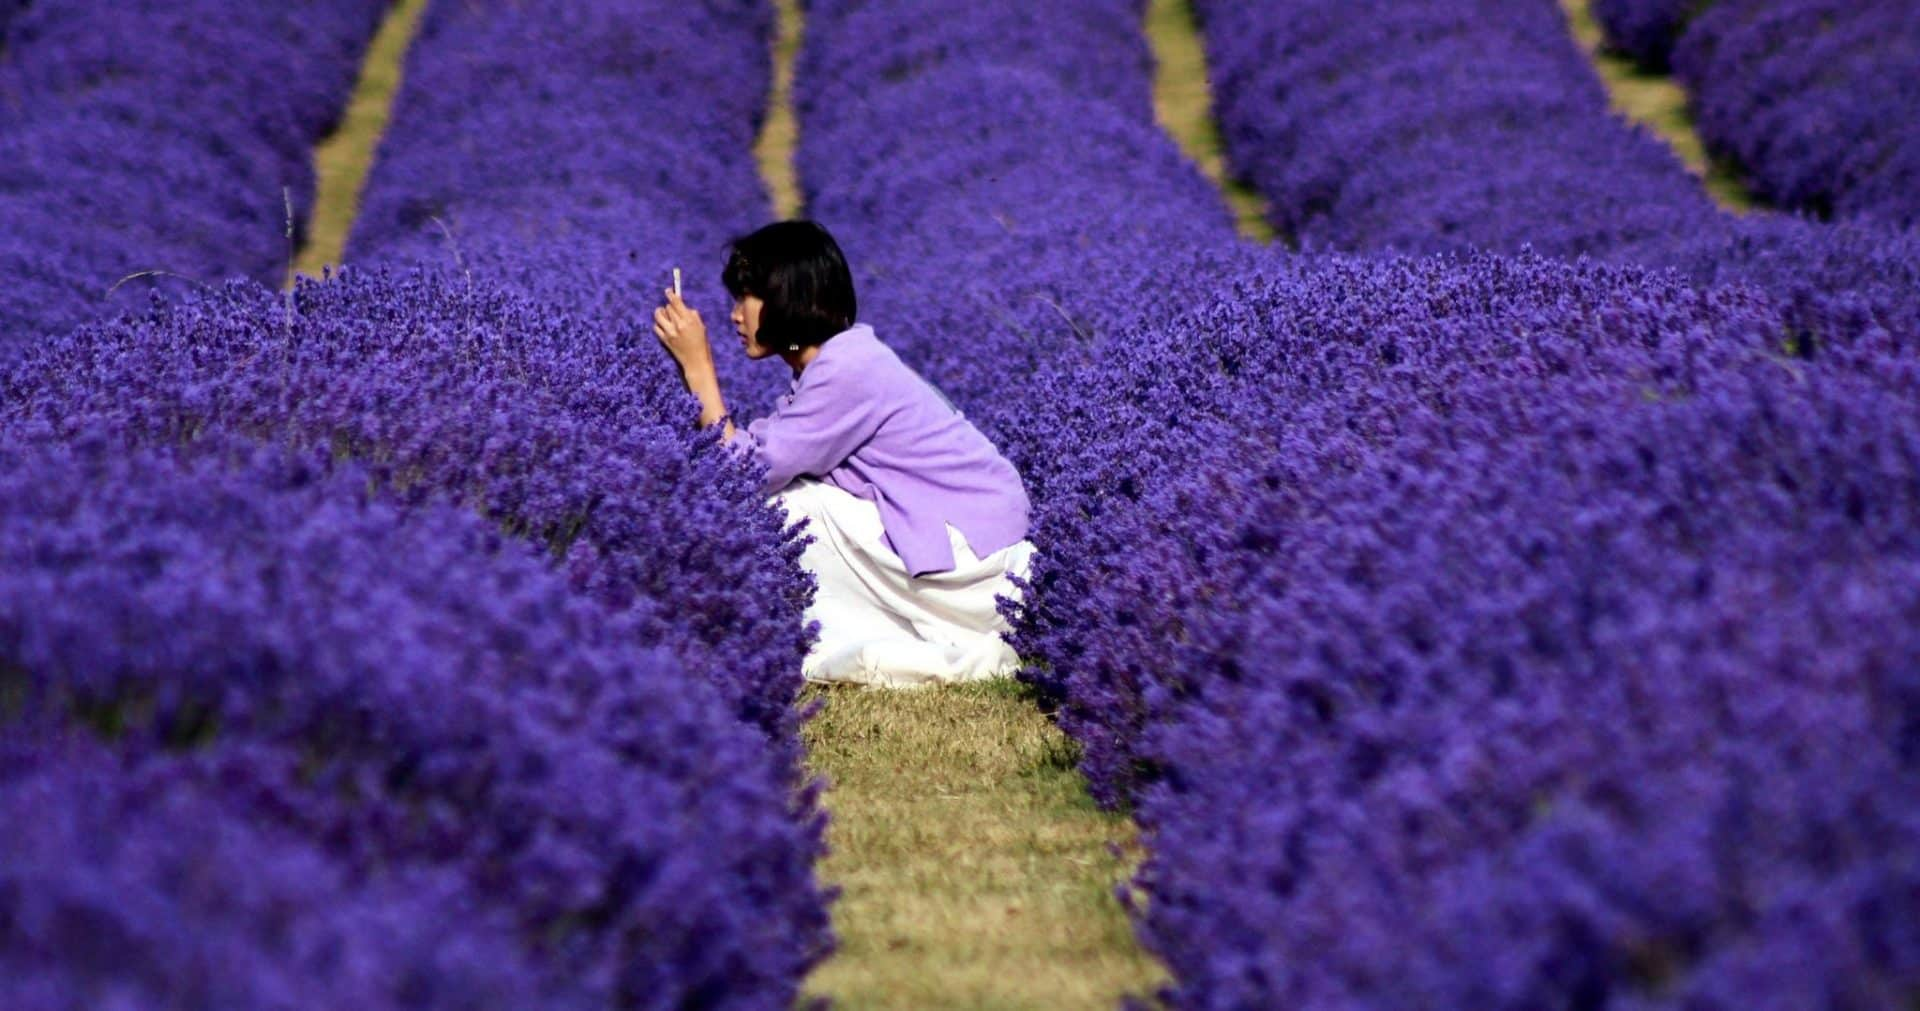 The Scenic Lavender Field